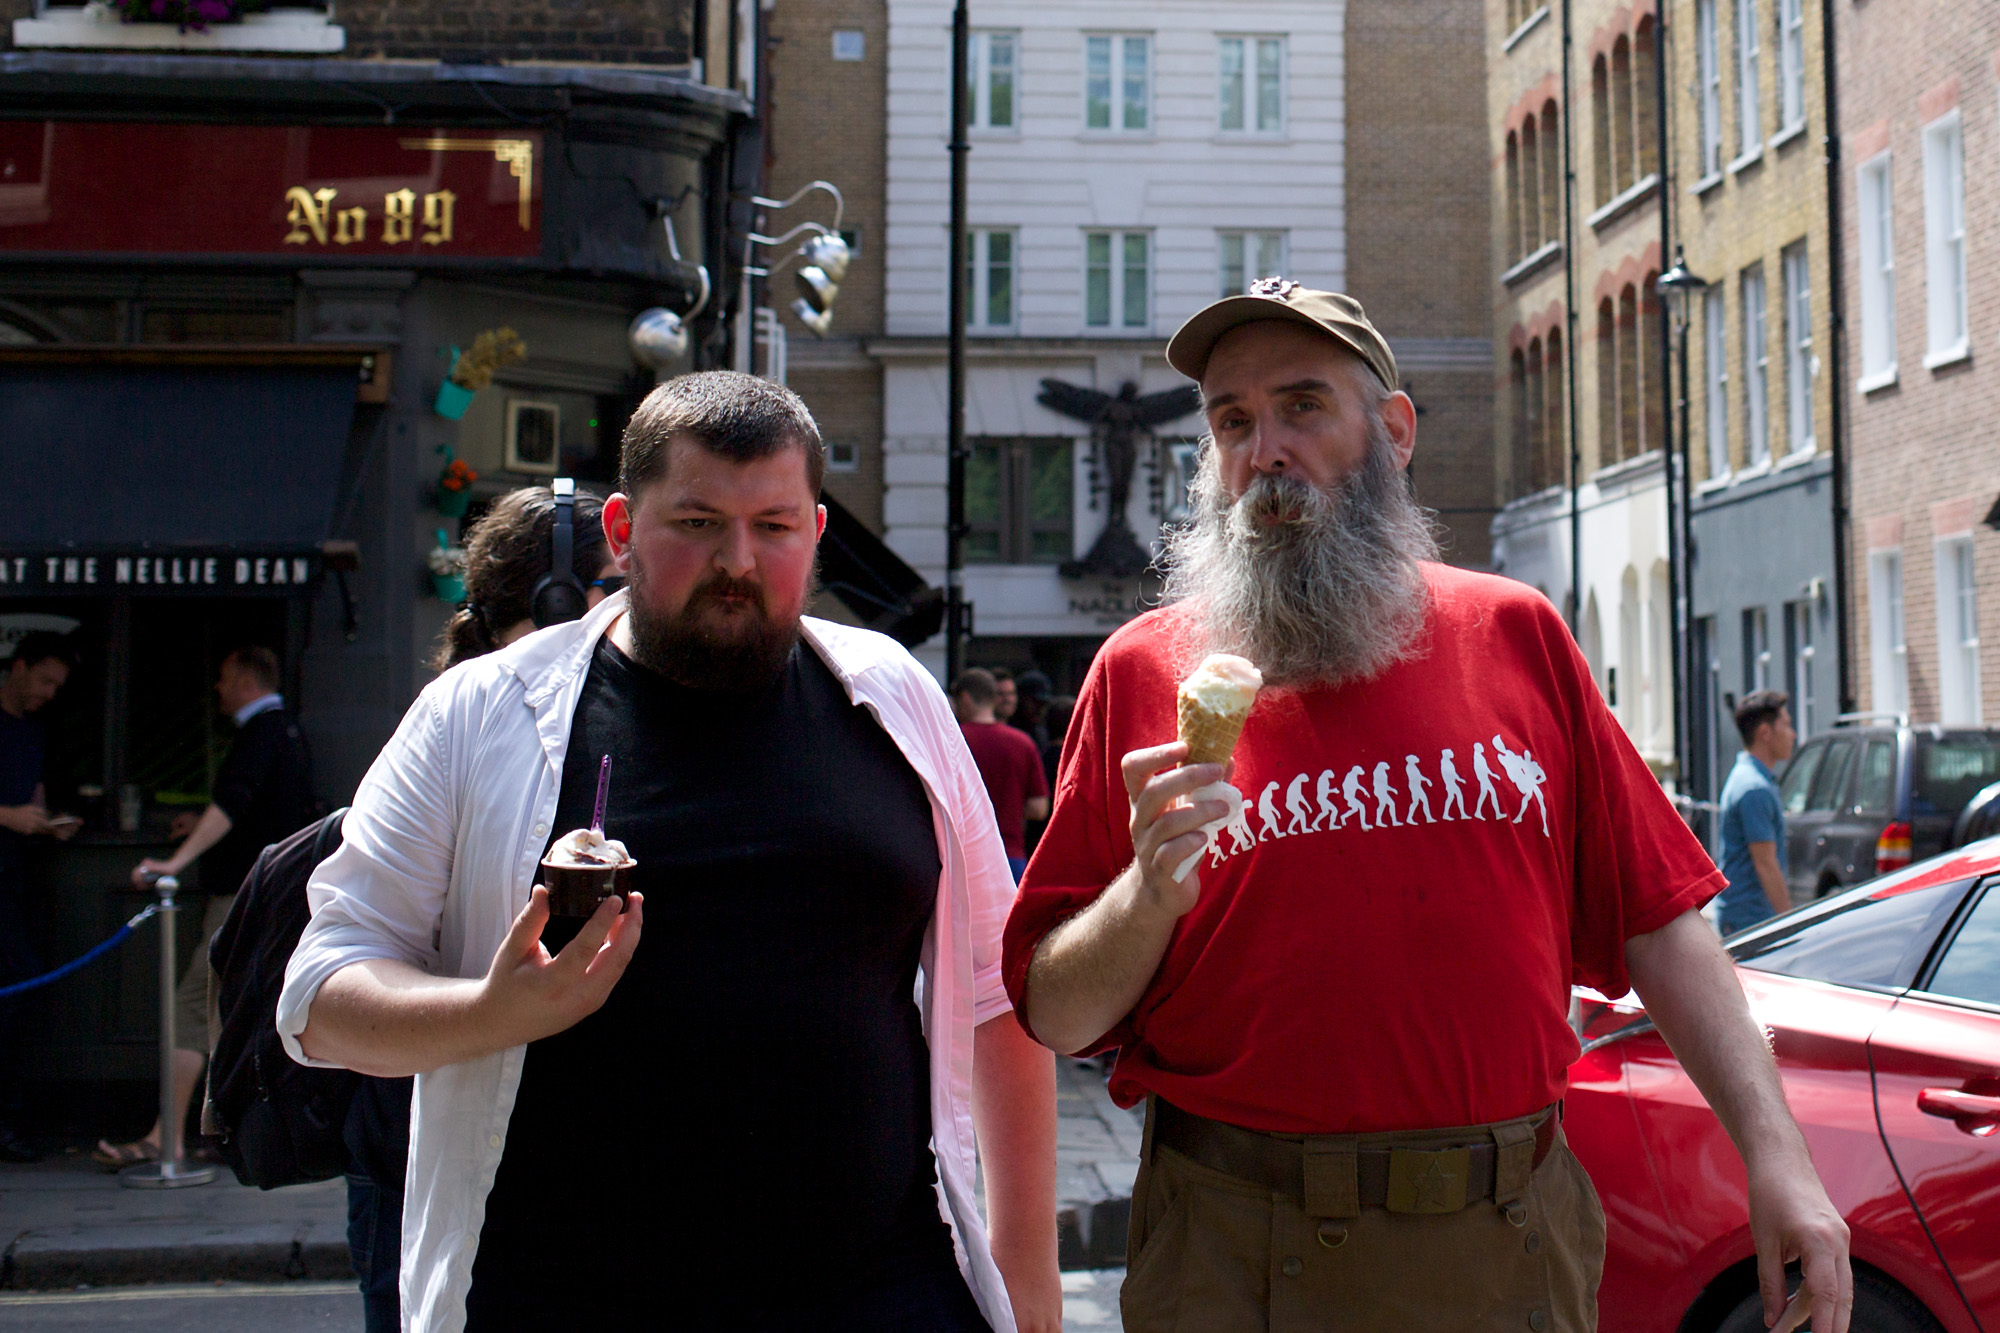 Two men in stylish gear, holding ice creams